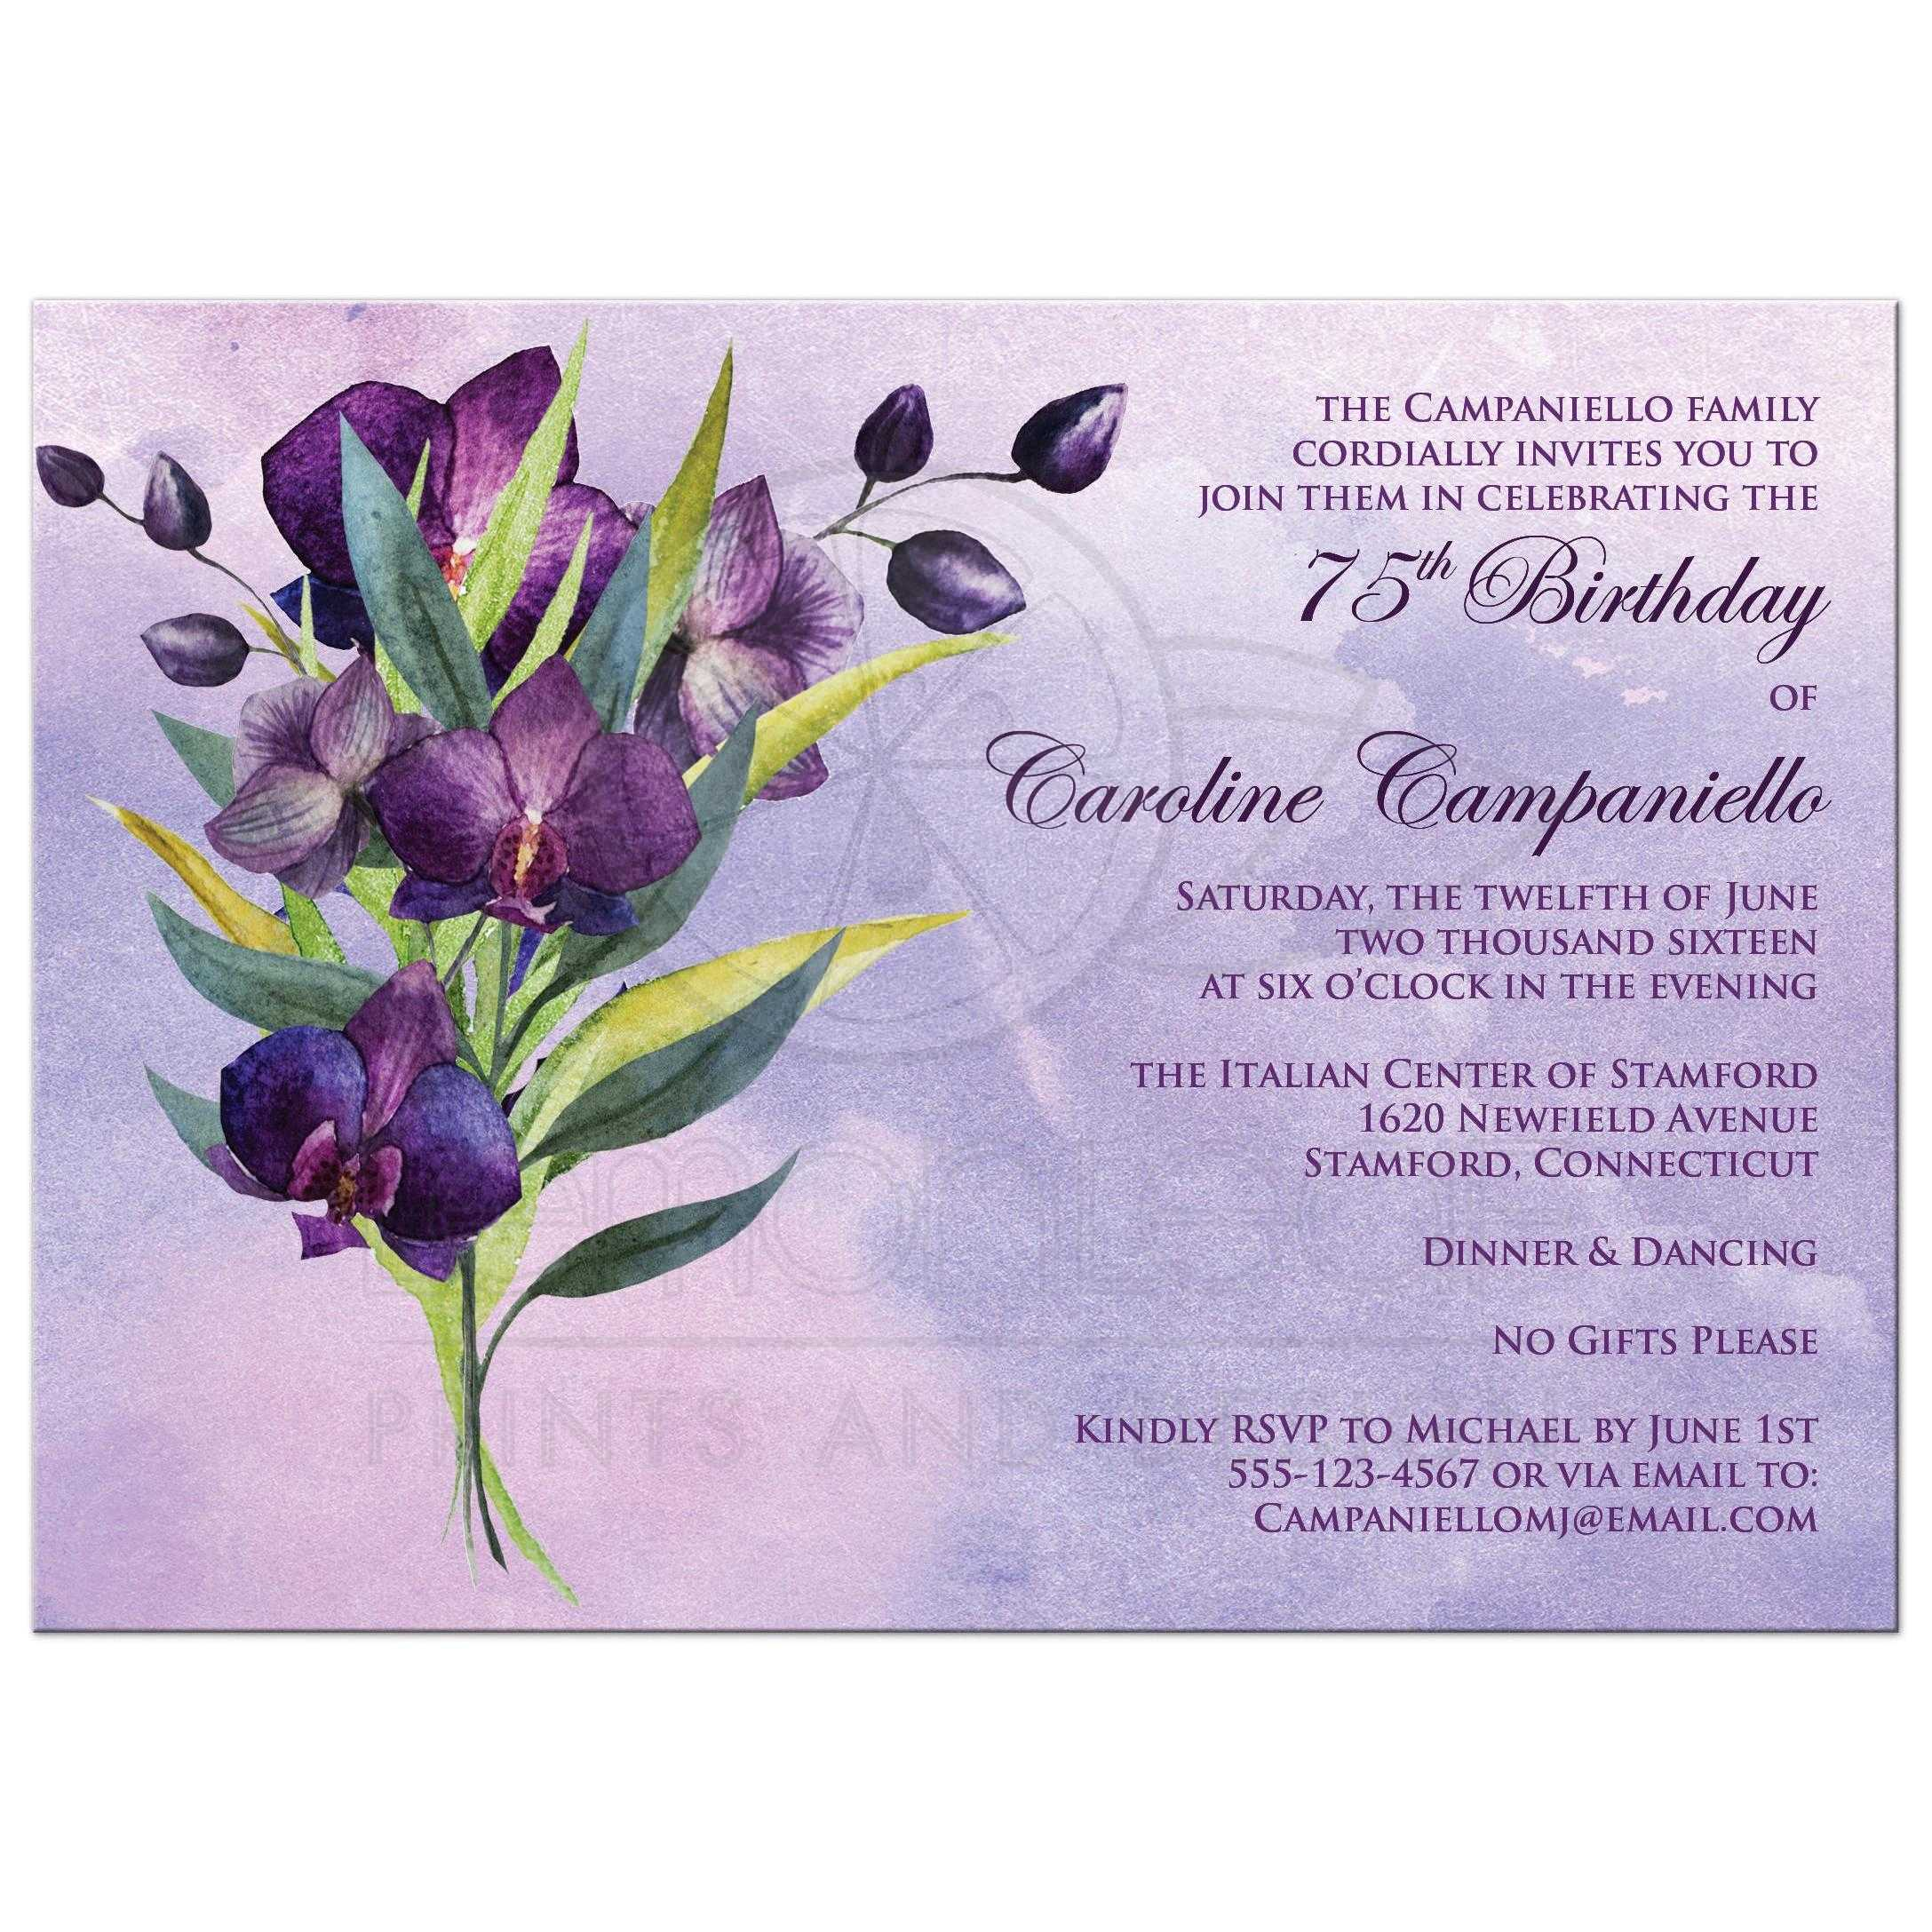 75th birthday party invitation purple orchids green foliage great purple orchids watercolor 75th birthday party invitation with green and yellow foliage filmwisefo